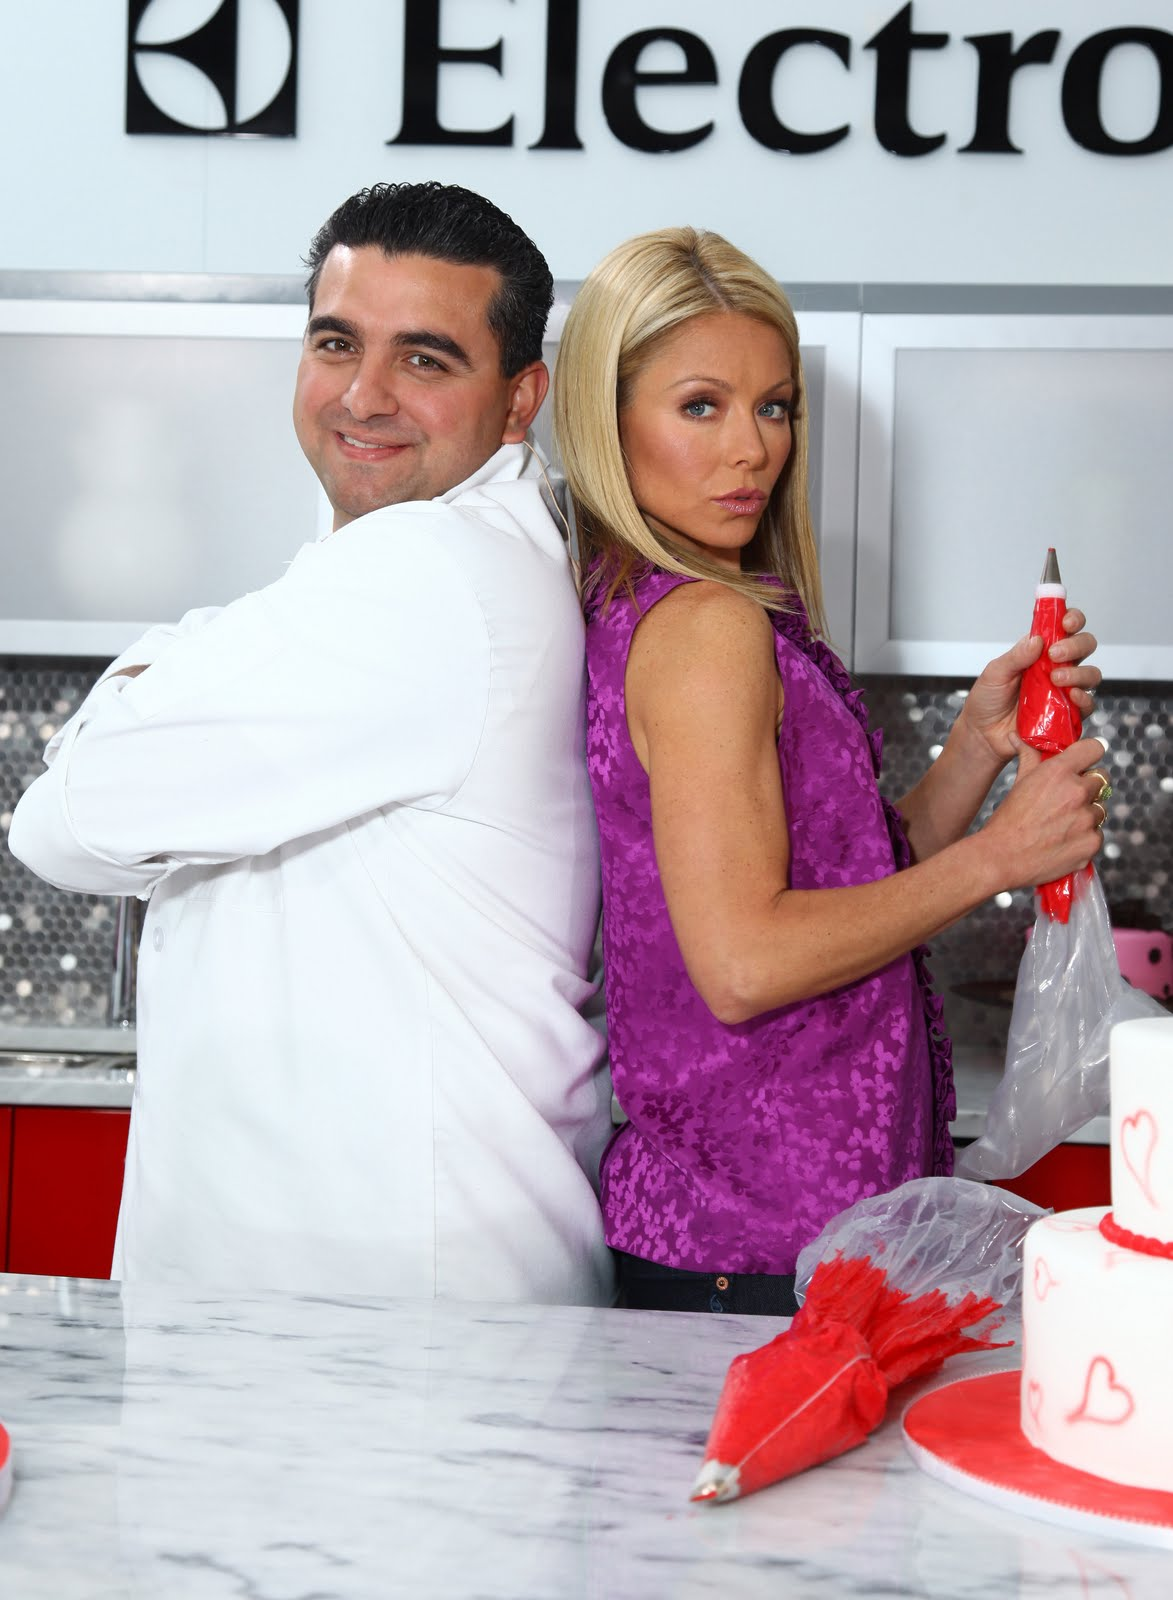 [Cake+Boss+and+Kelly+Ripa]